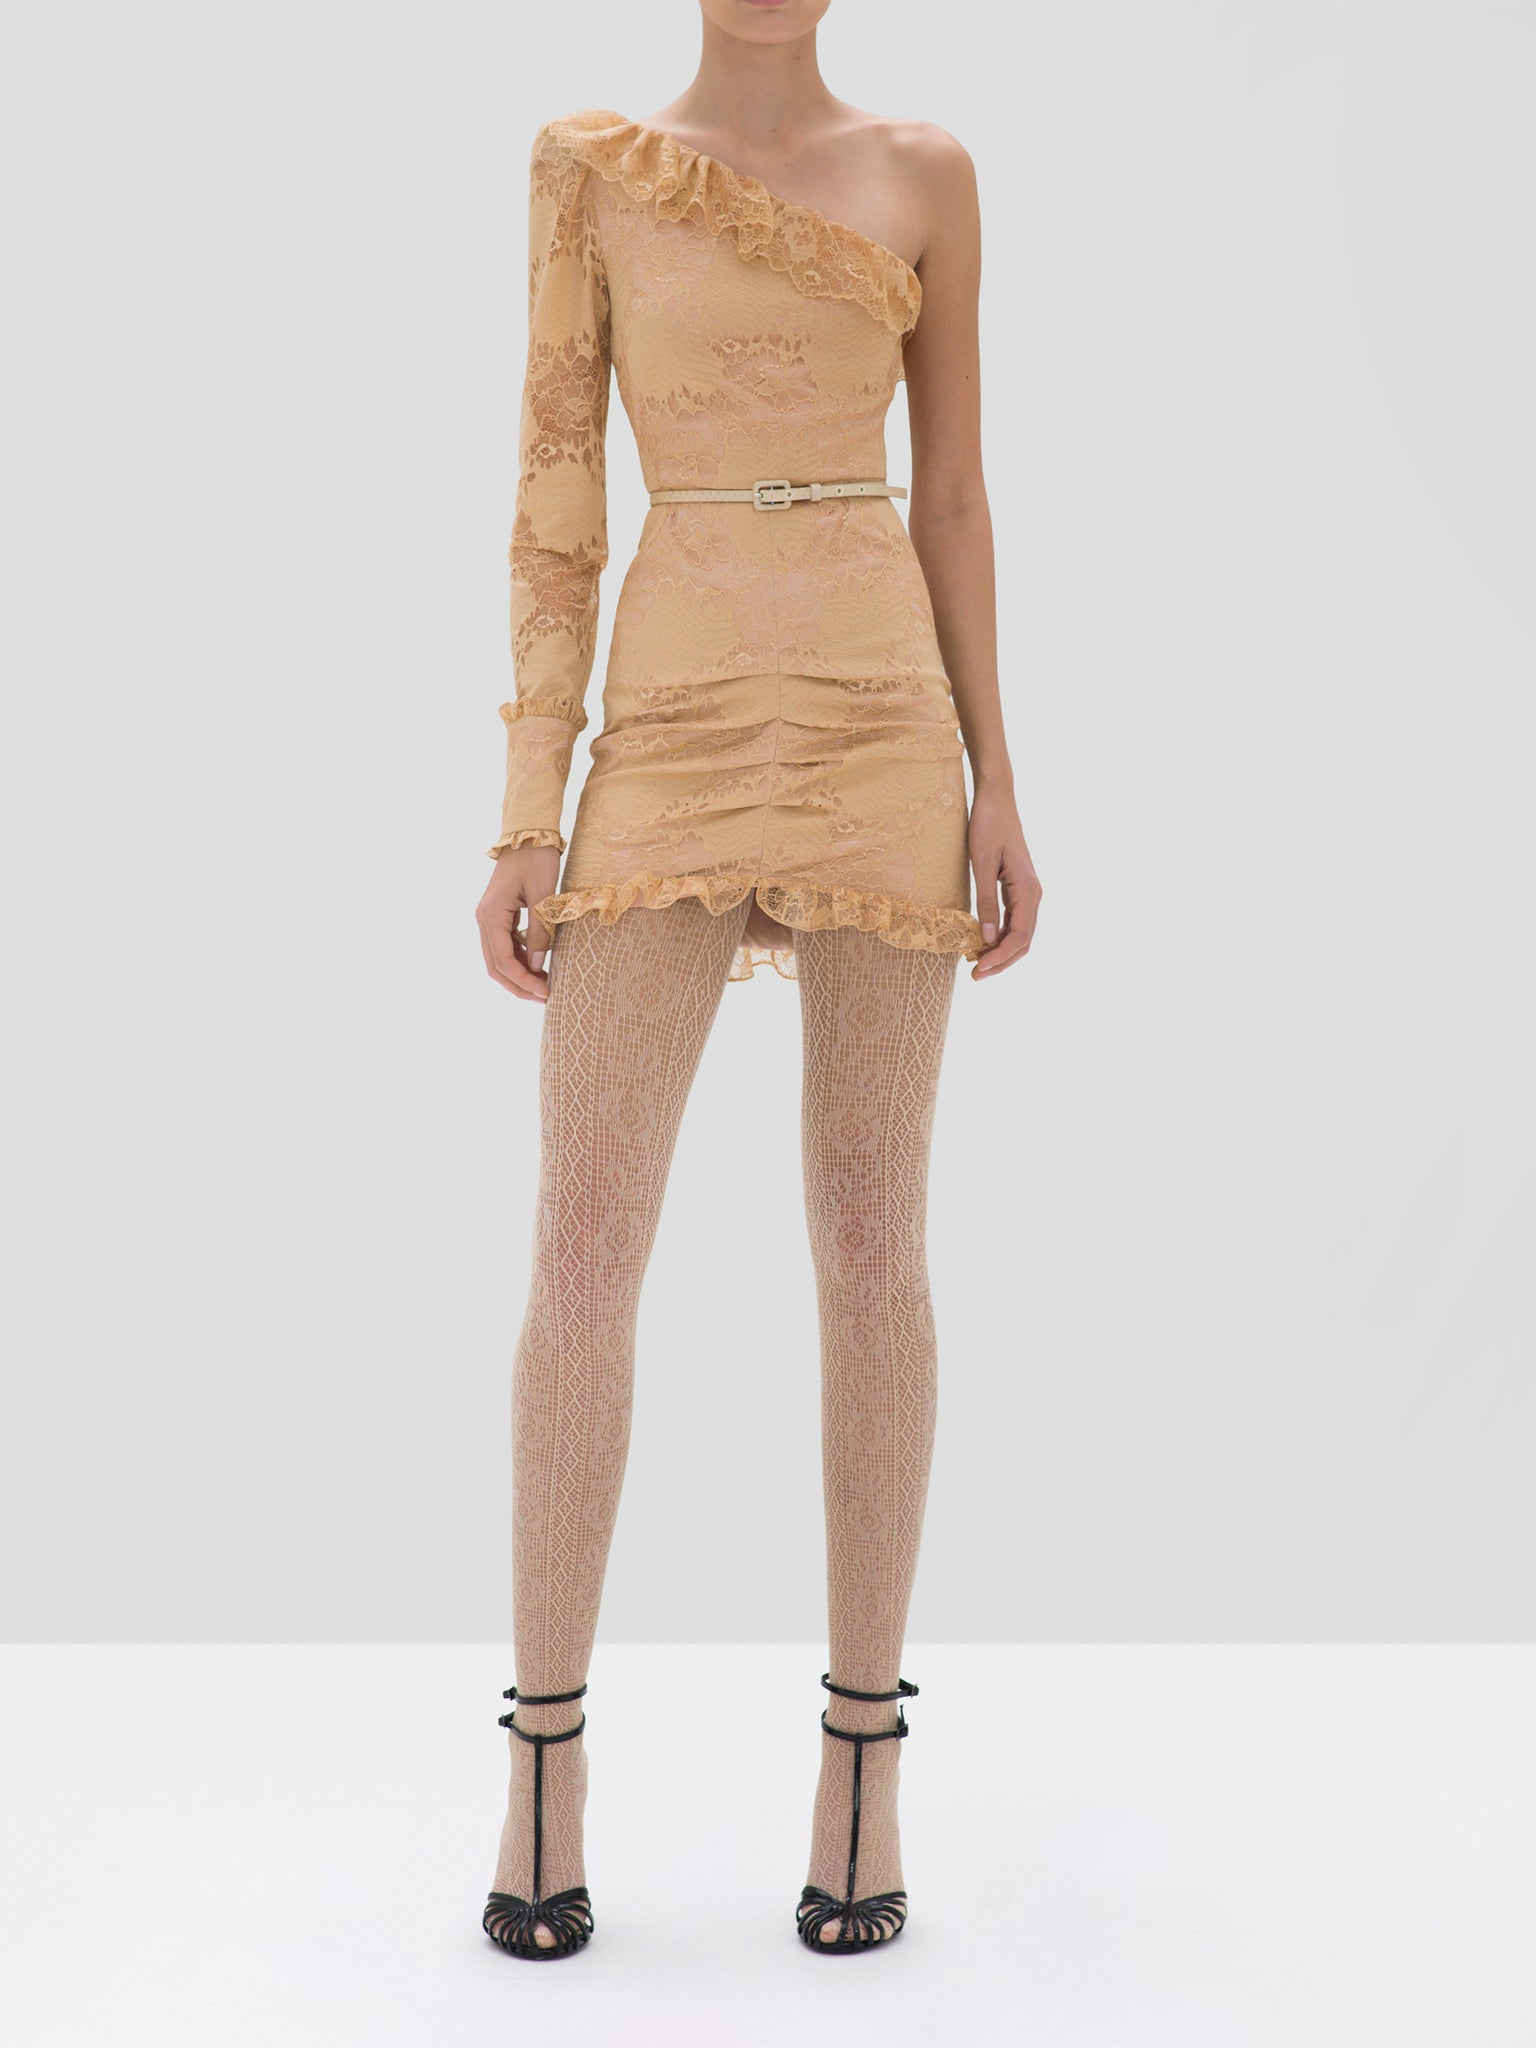 Alexis Ilana Dress in Sand from the Fall Winter 2019 Ready To Wear Collection